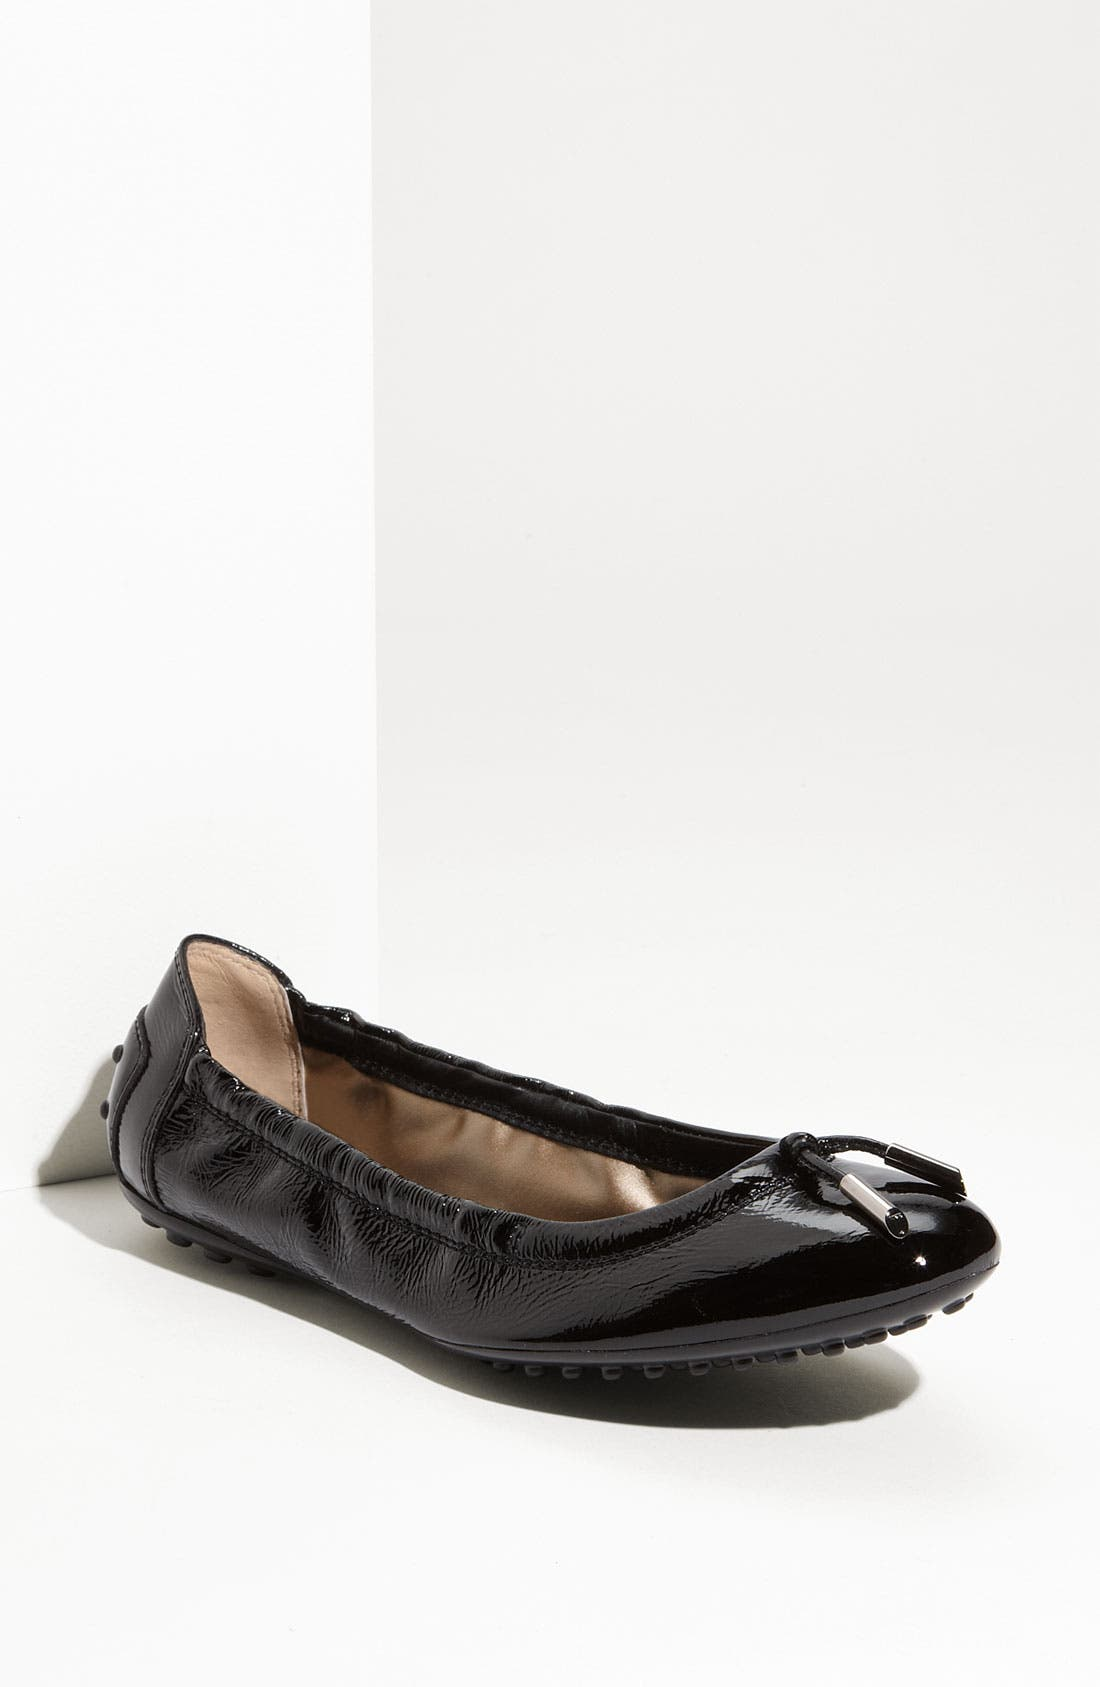 Alternate Image 1 Selected - Tod's Bow Trim Patent Leather Flat